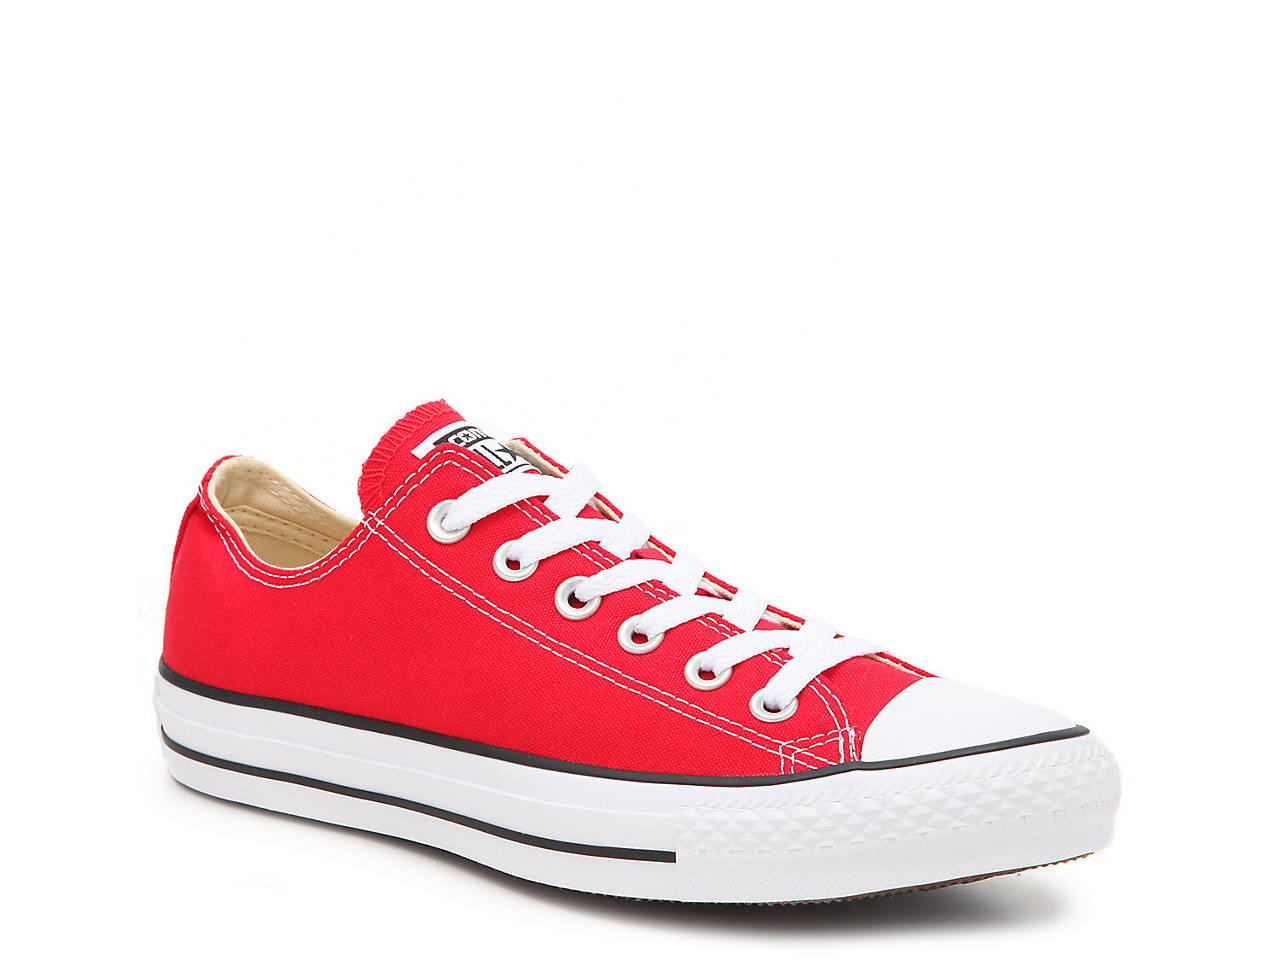 00b6655b5dfc Converse Chuck Taylor All Star Sneaker - Women s Women s Shoes